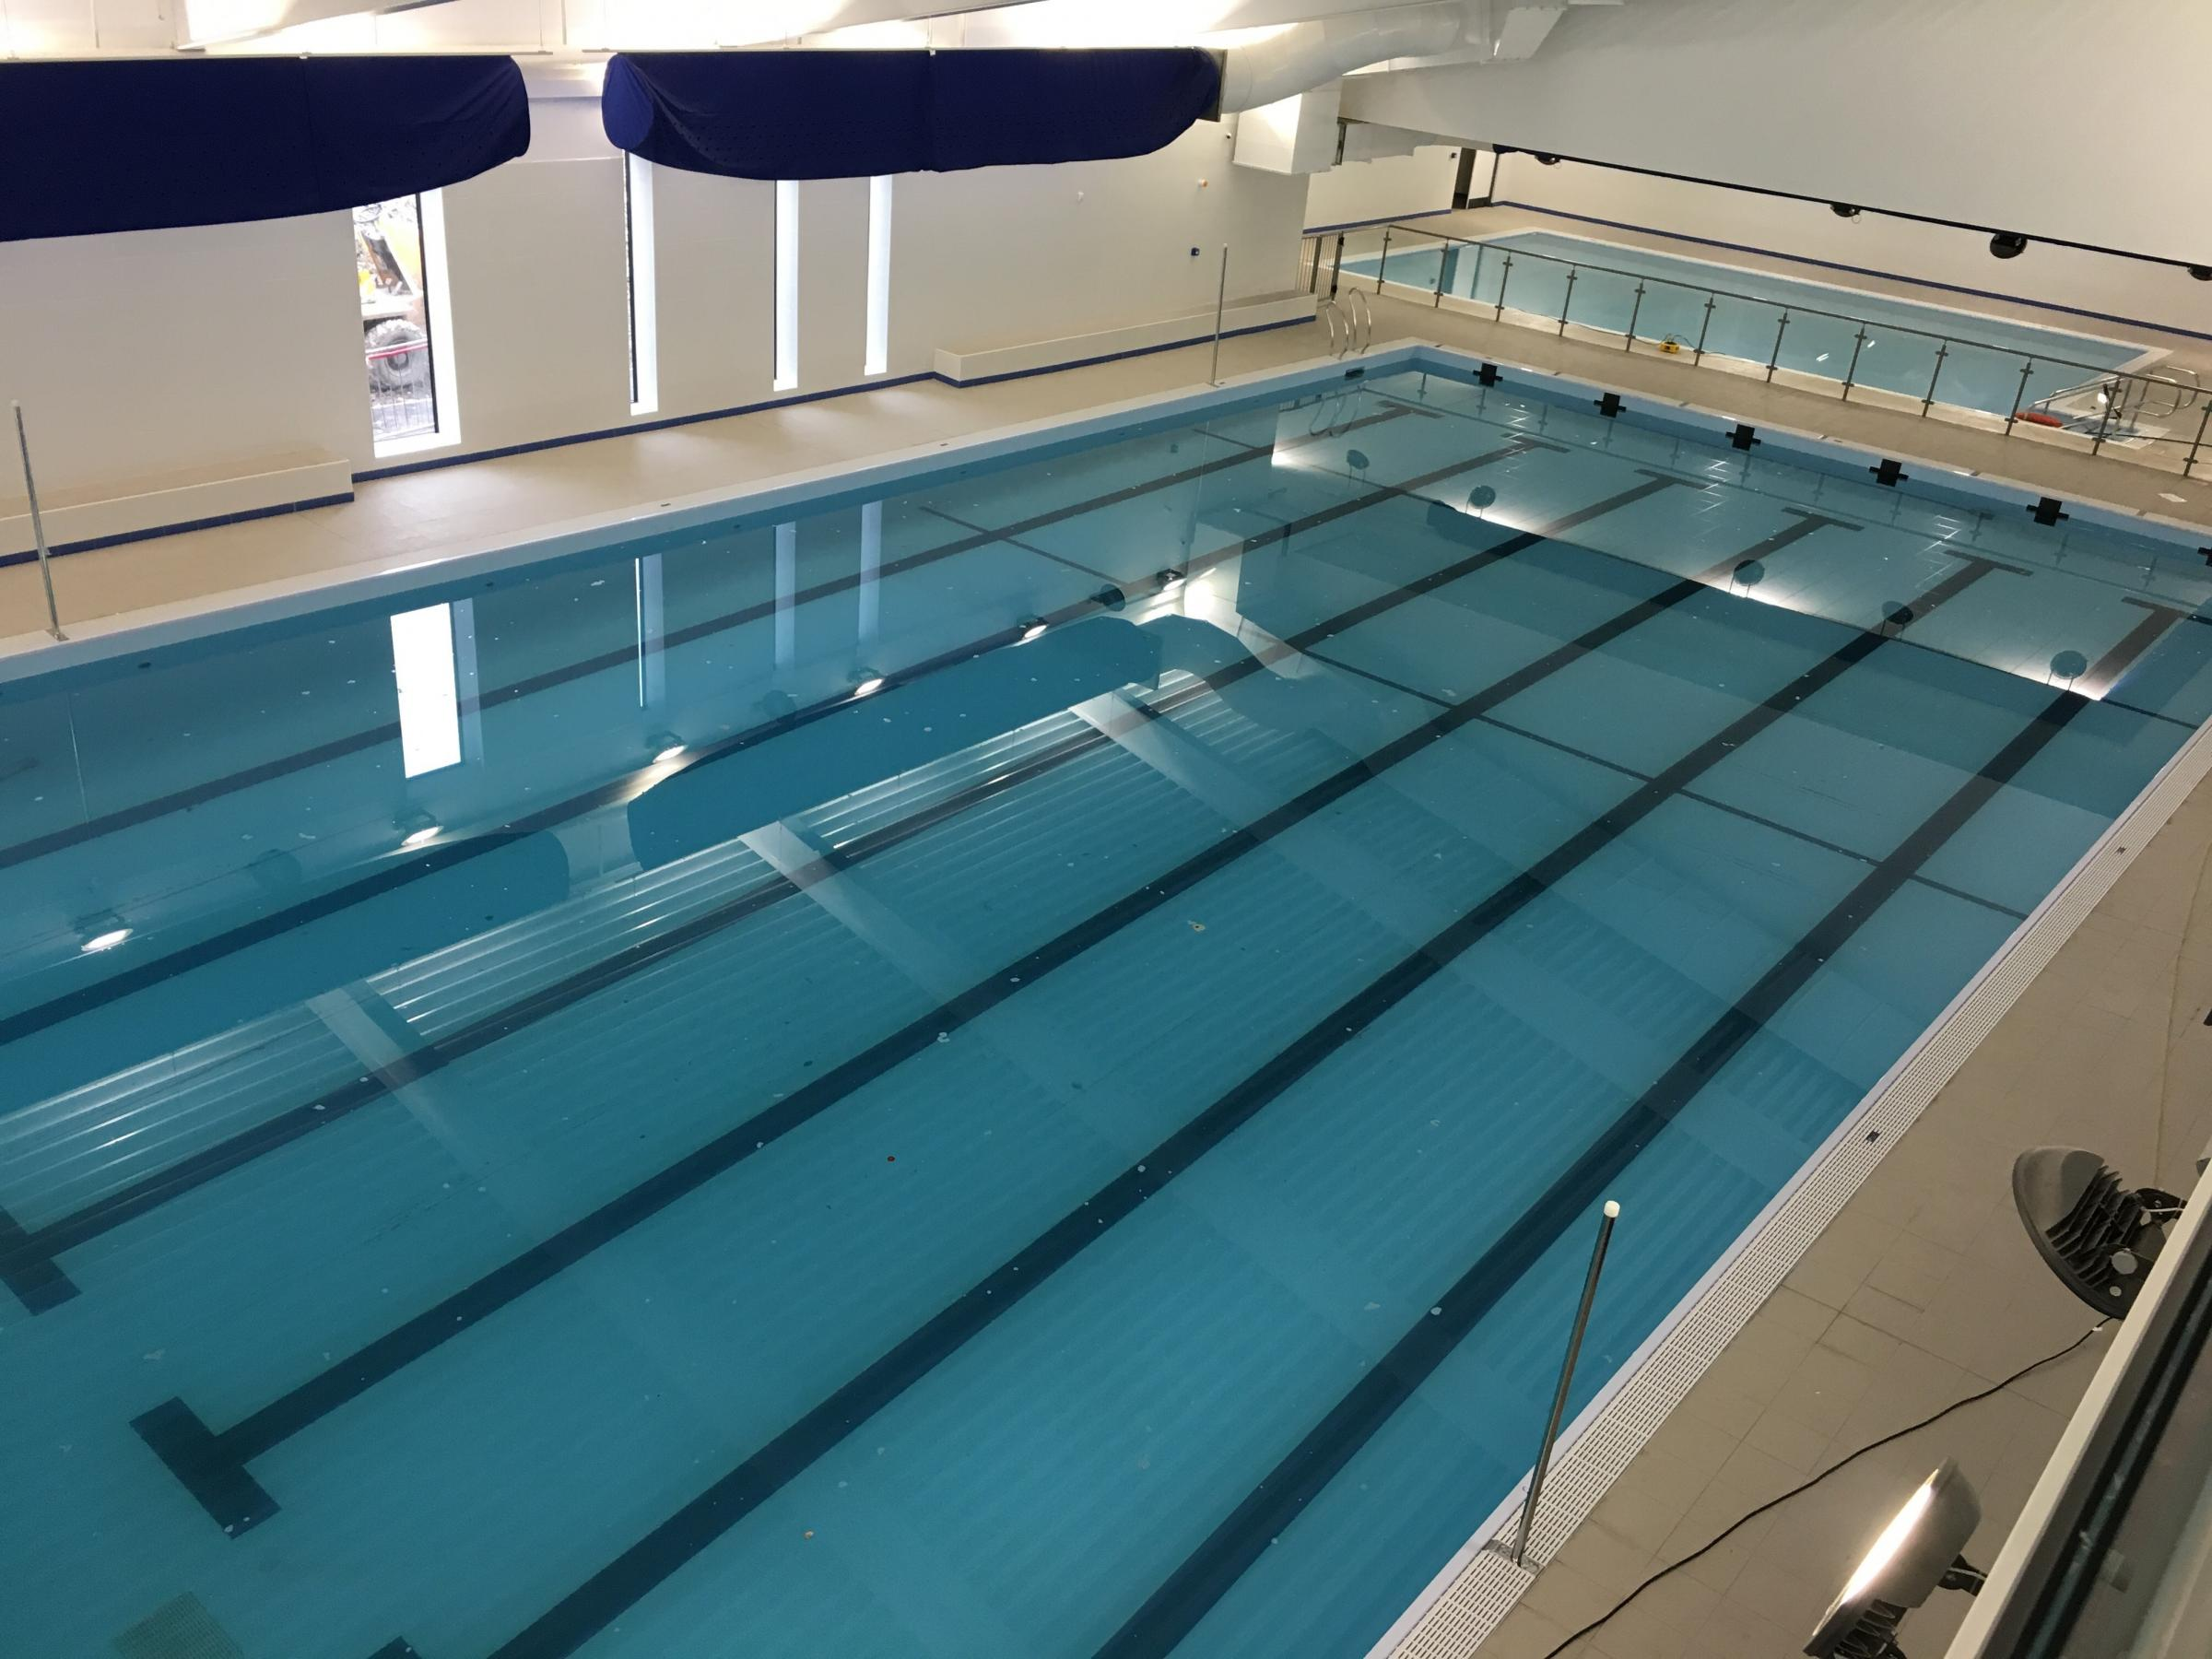 TOUR: First look at the nearly-completed Horwich Leisure Centre (swimming pool)